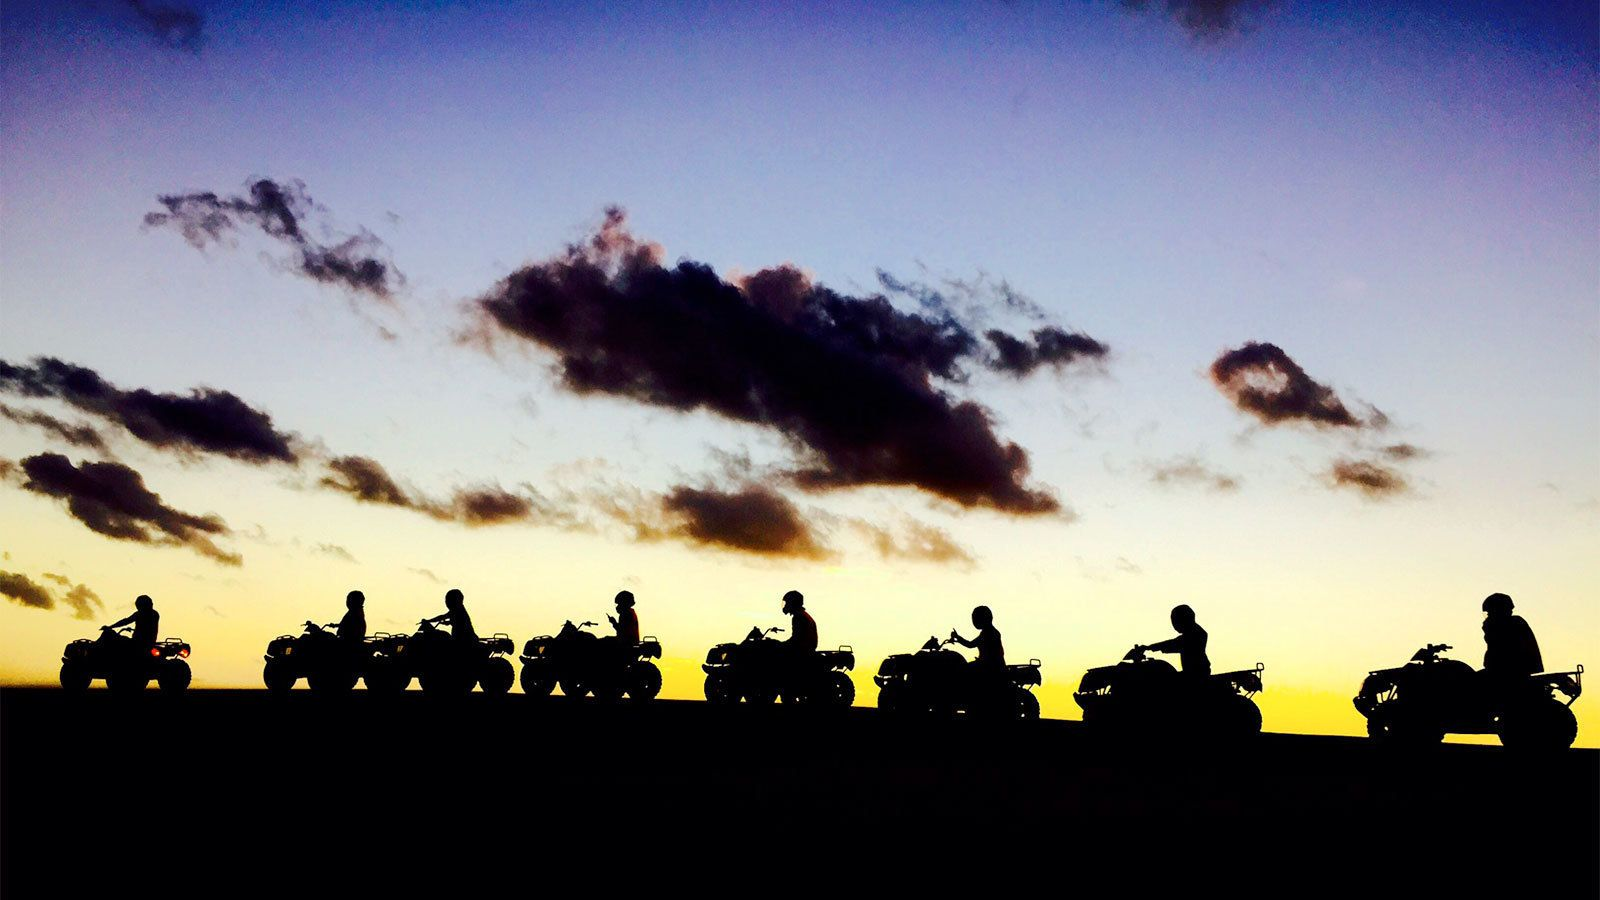 Sunset view of the quad bike tour in New South Wales Regional, NSW, Australia